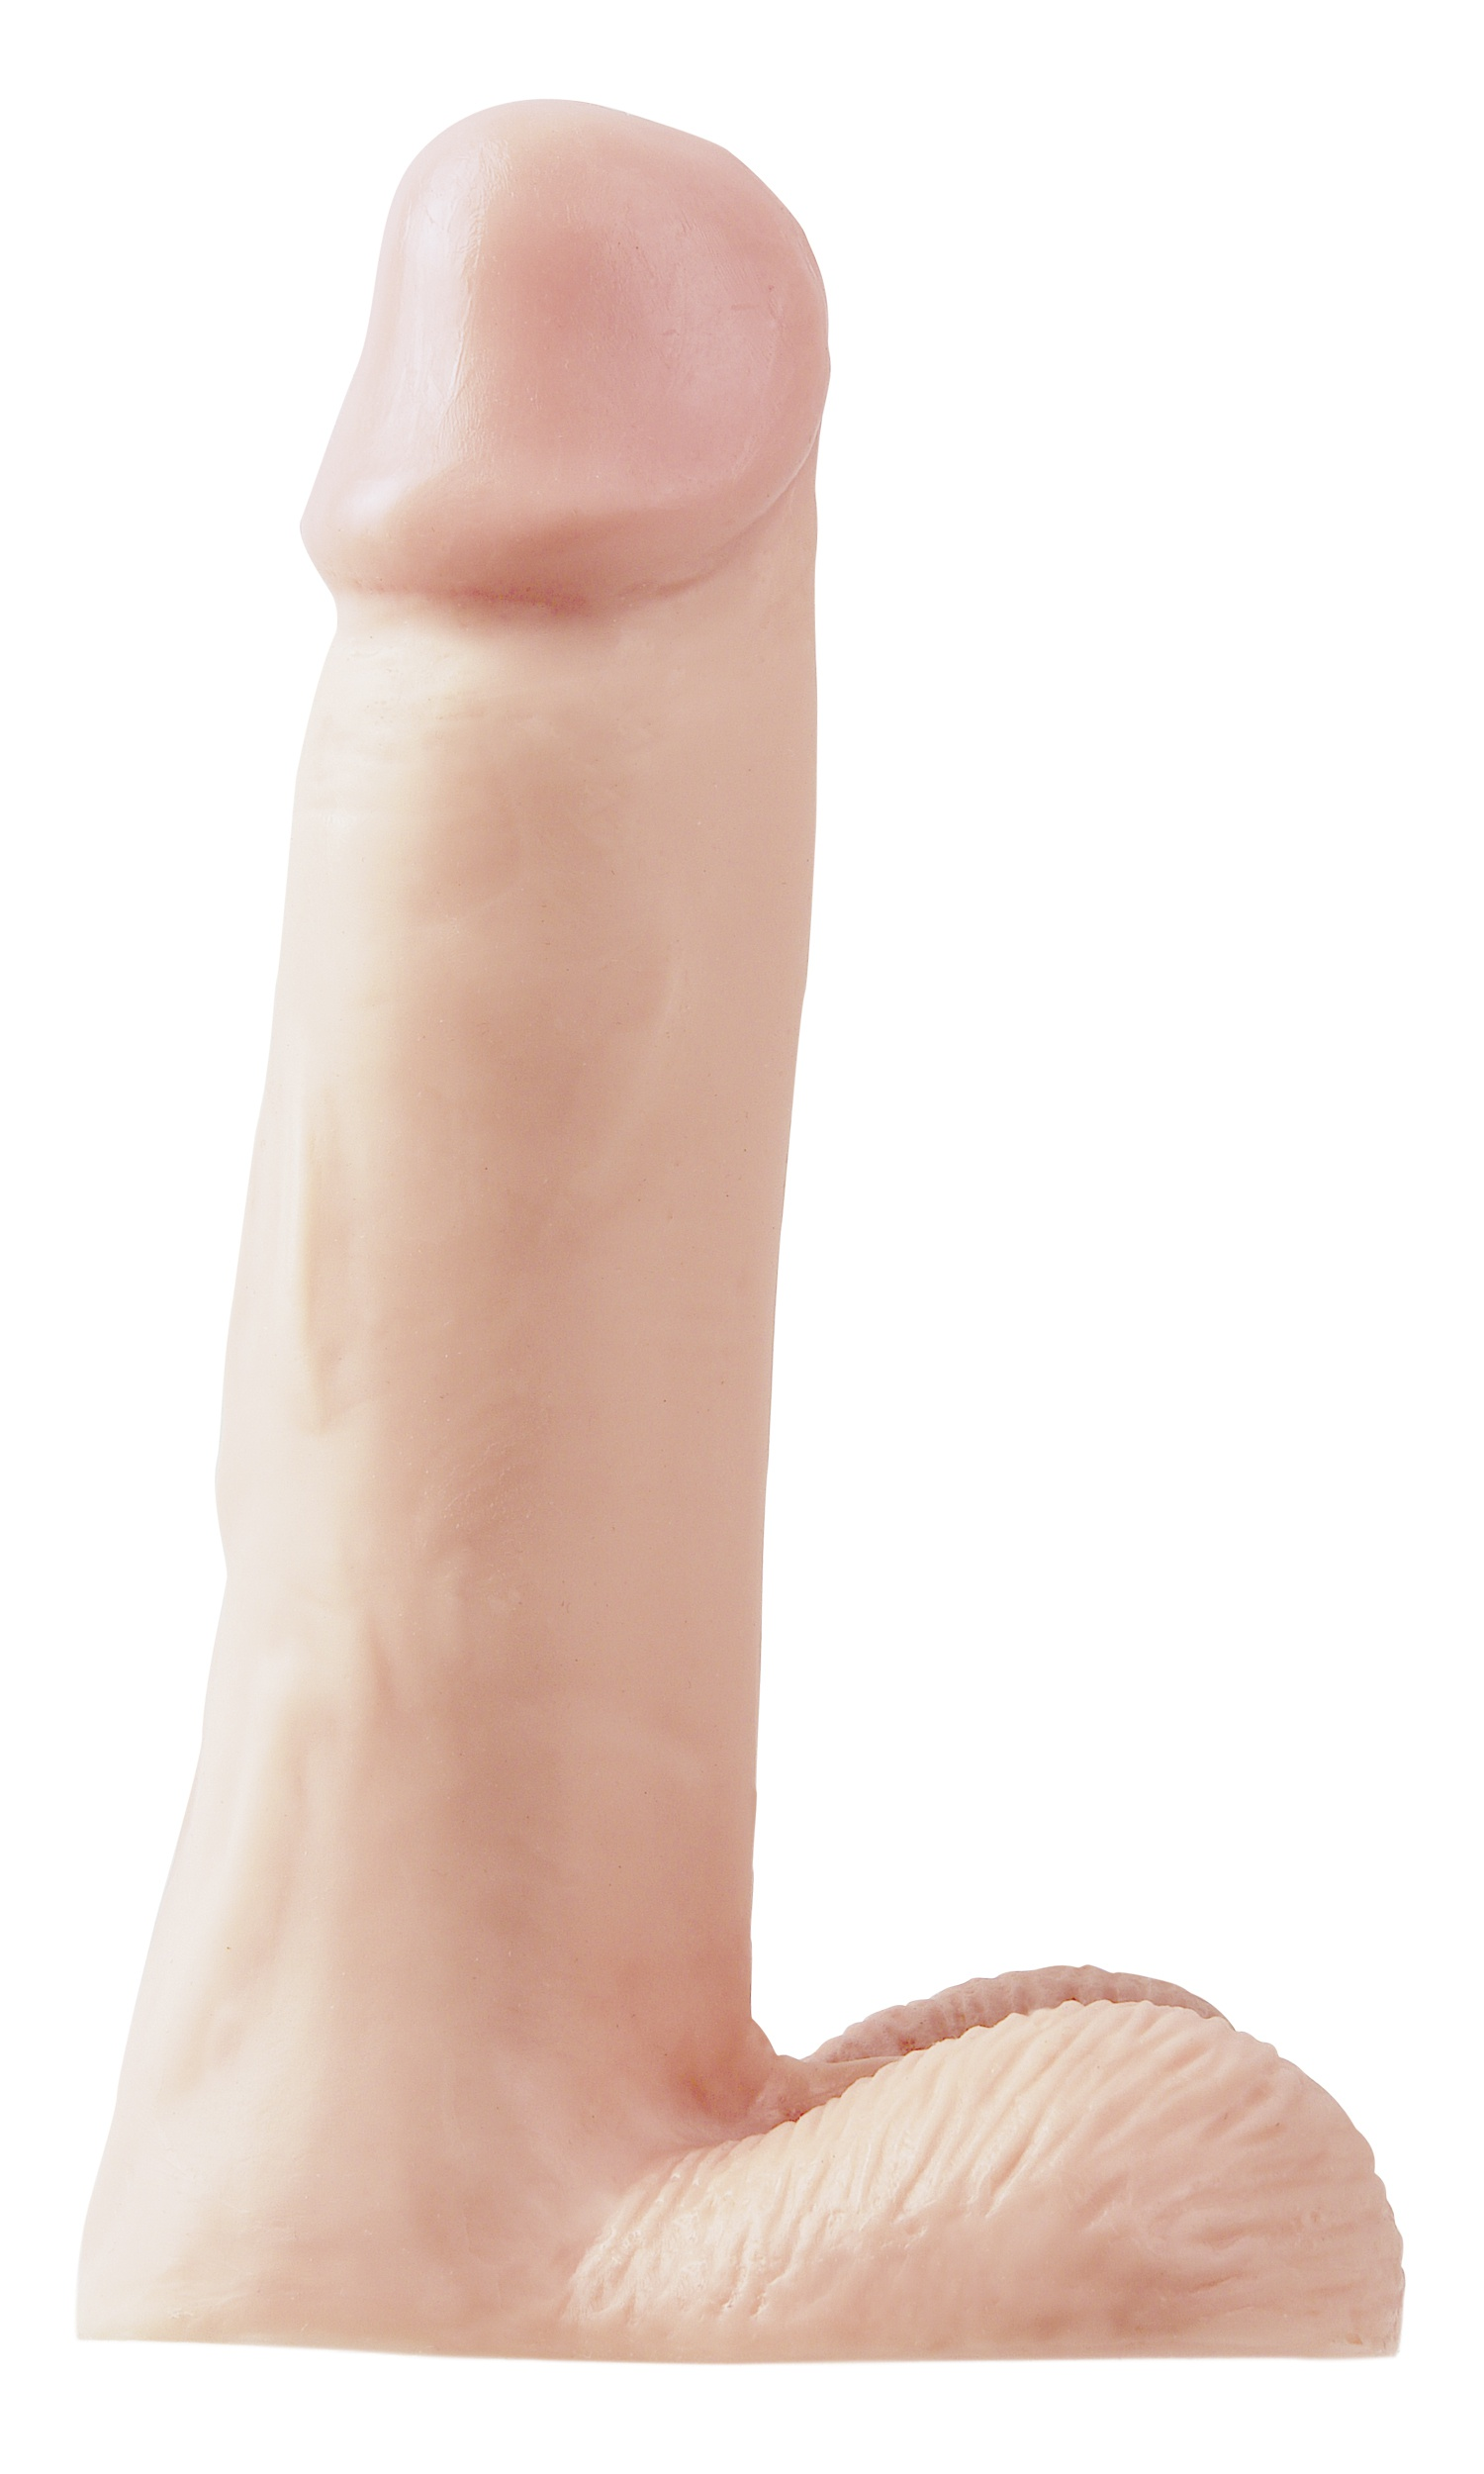 "SexShop - Dildo realistyczne - PIPEDREAM Basix Rubber Works 8"" Dong naturalny - online"